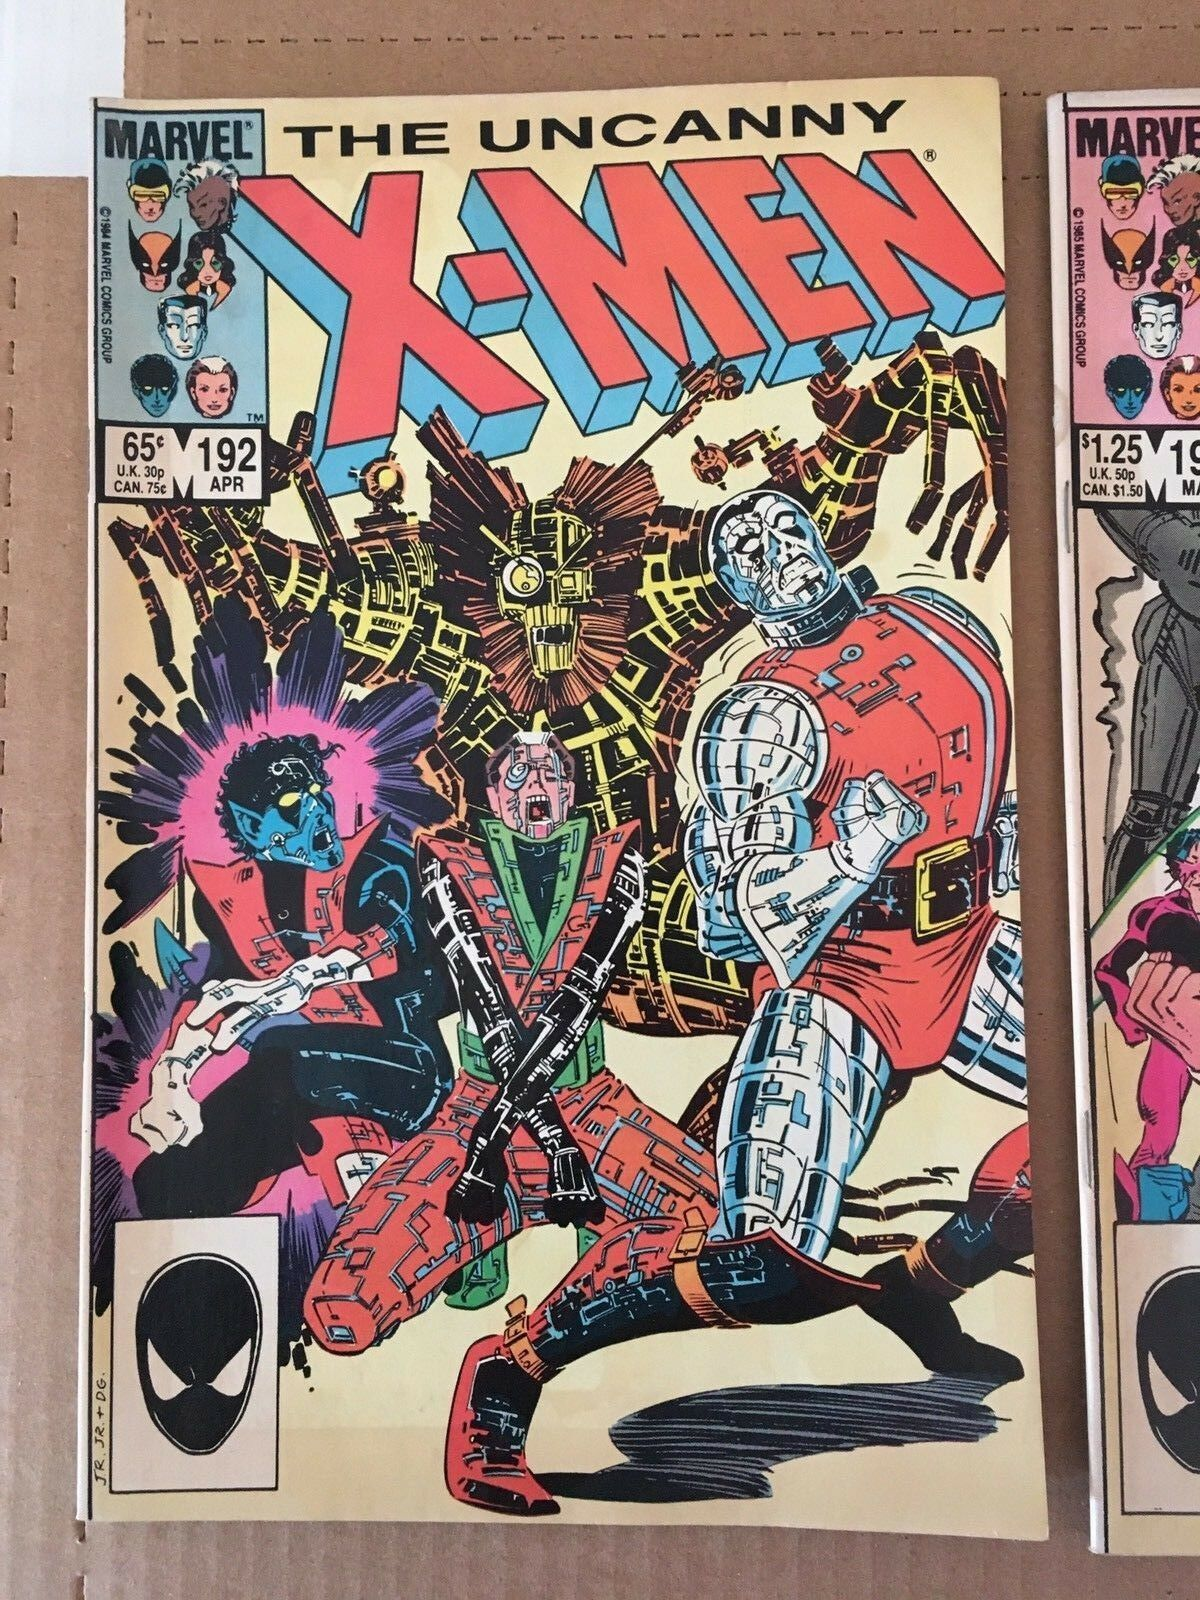 Uncanny X-Men #192 193 194 Marvel Comic Book Lot from 1985 FN+ Condition